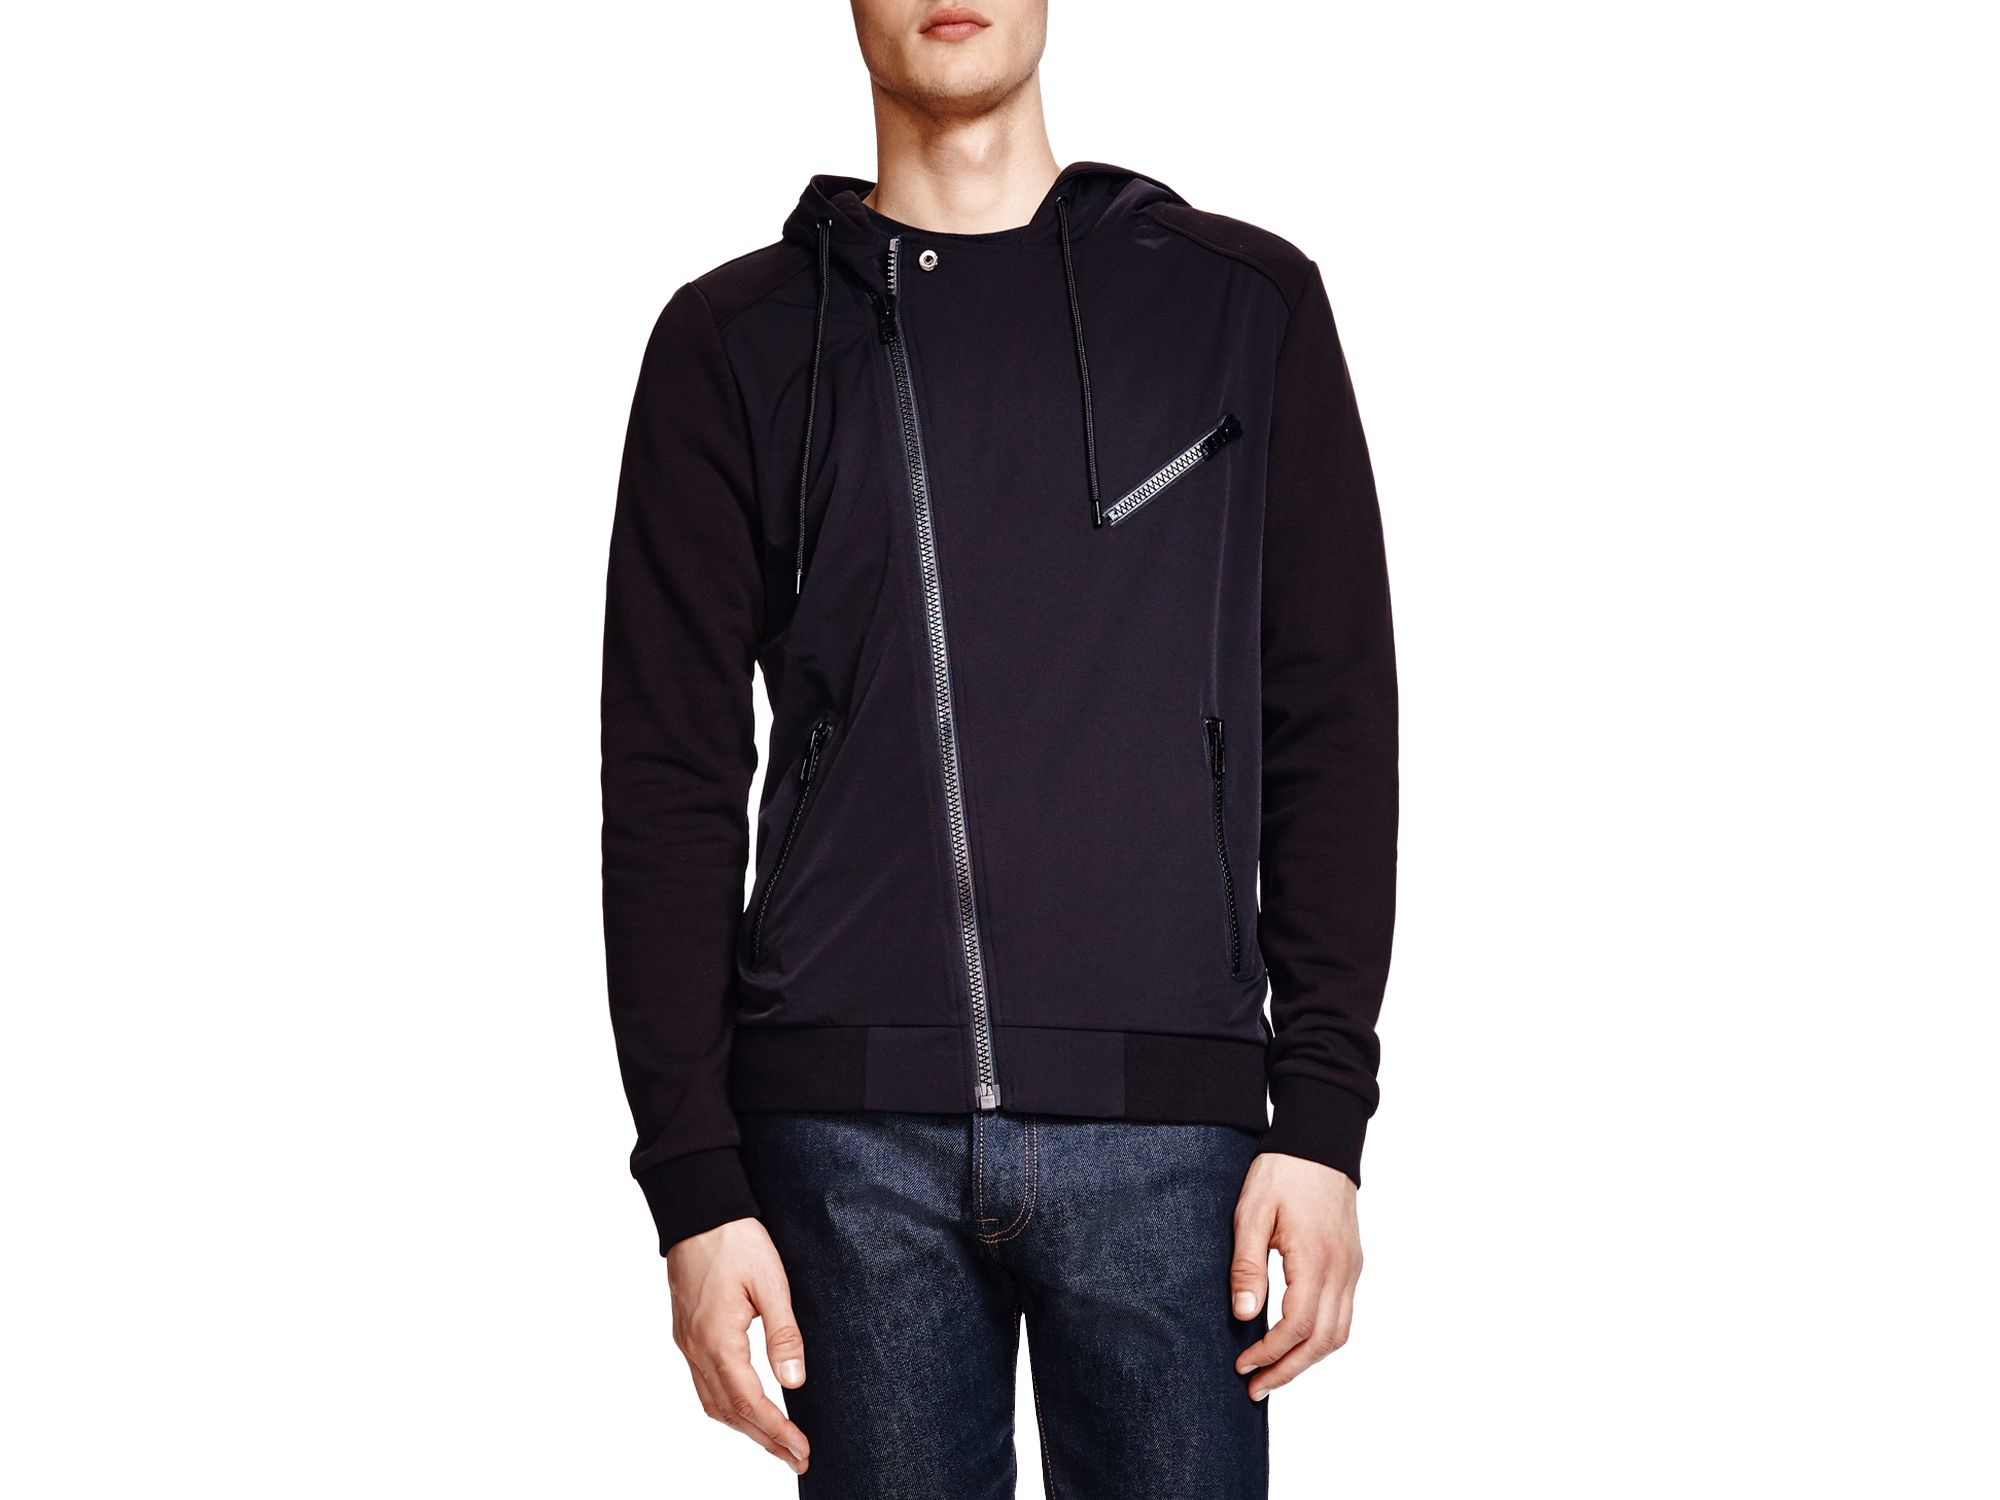 Find Men's Motorcycle Hoodies at J&P Cycles, your source for aftermarket motorcycle parts and accessories.